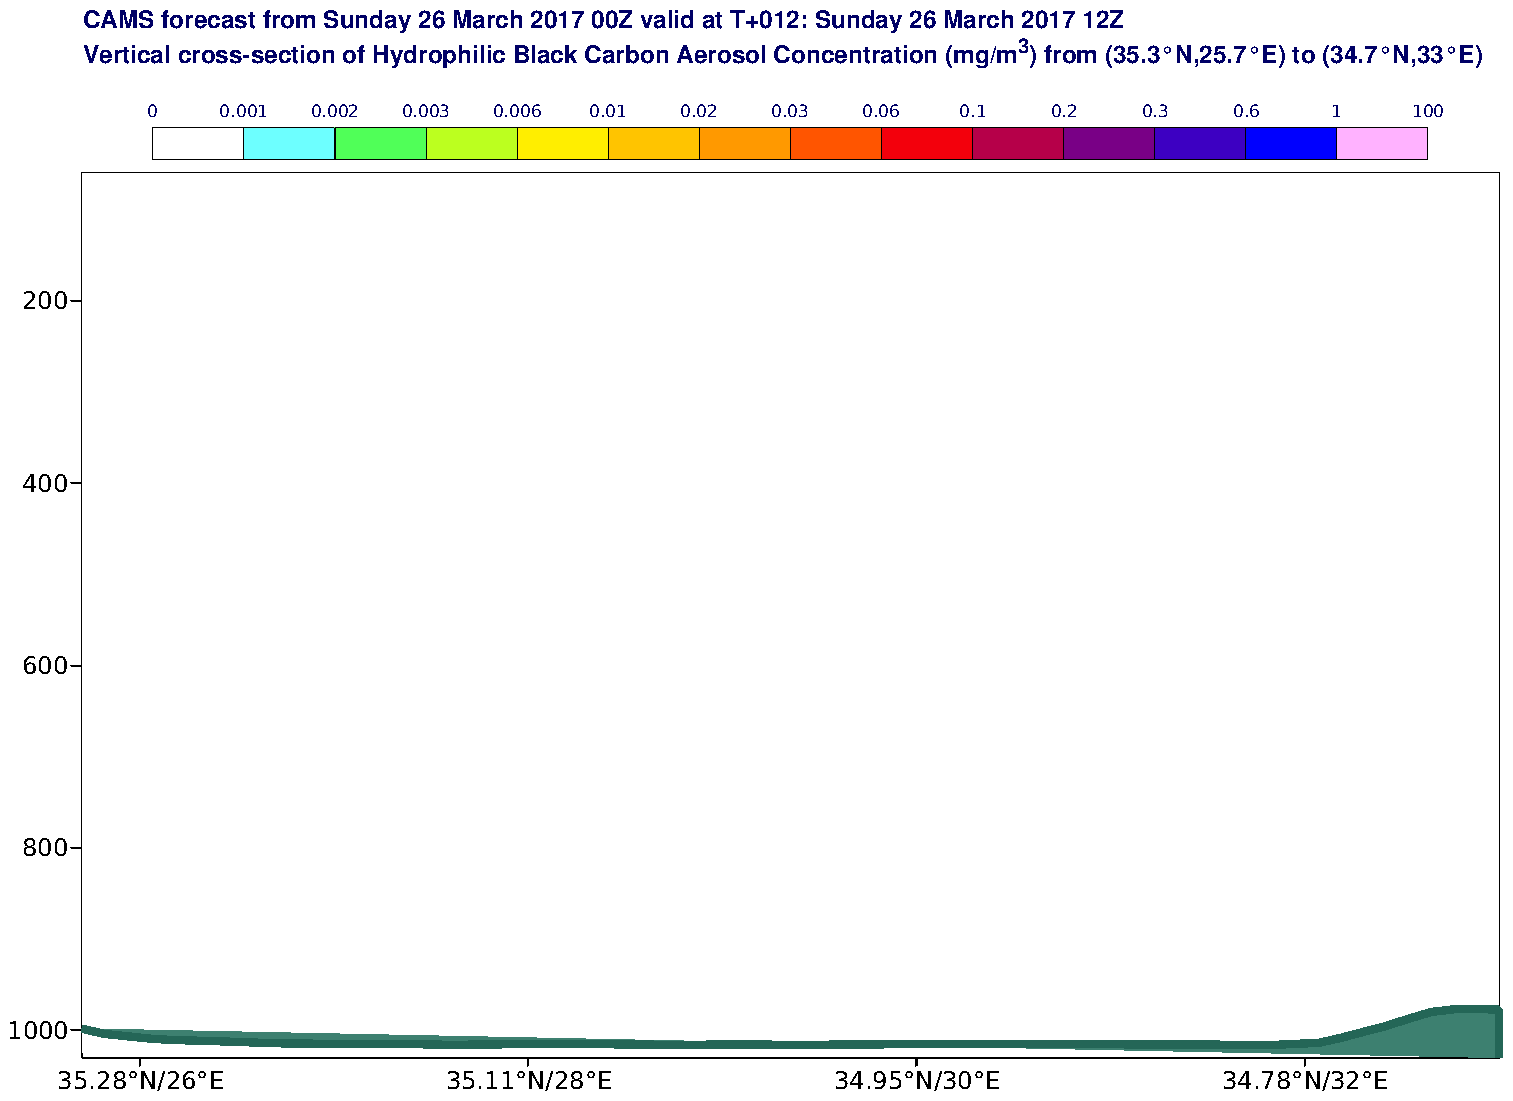 Vertical cross-section of Hydrophilic Black Carbon Aerosol Concentration (mg/m3) valid at T12 - 2017-03-26 12:00